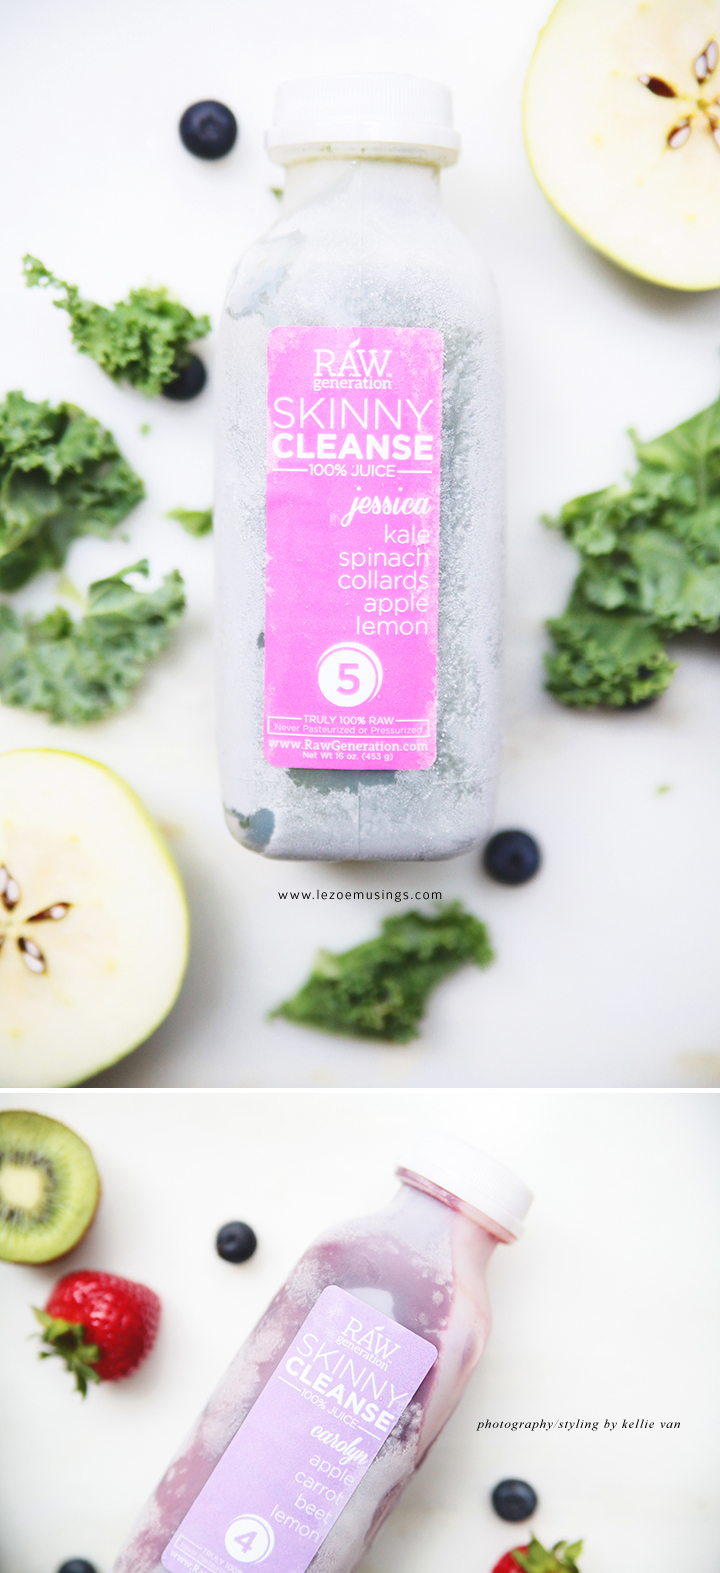 THE SKINNY CLEANSE BY LE ZOE MUSINGS 2